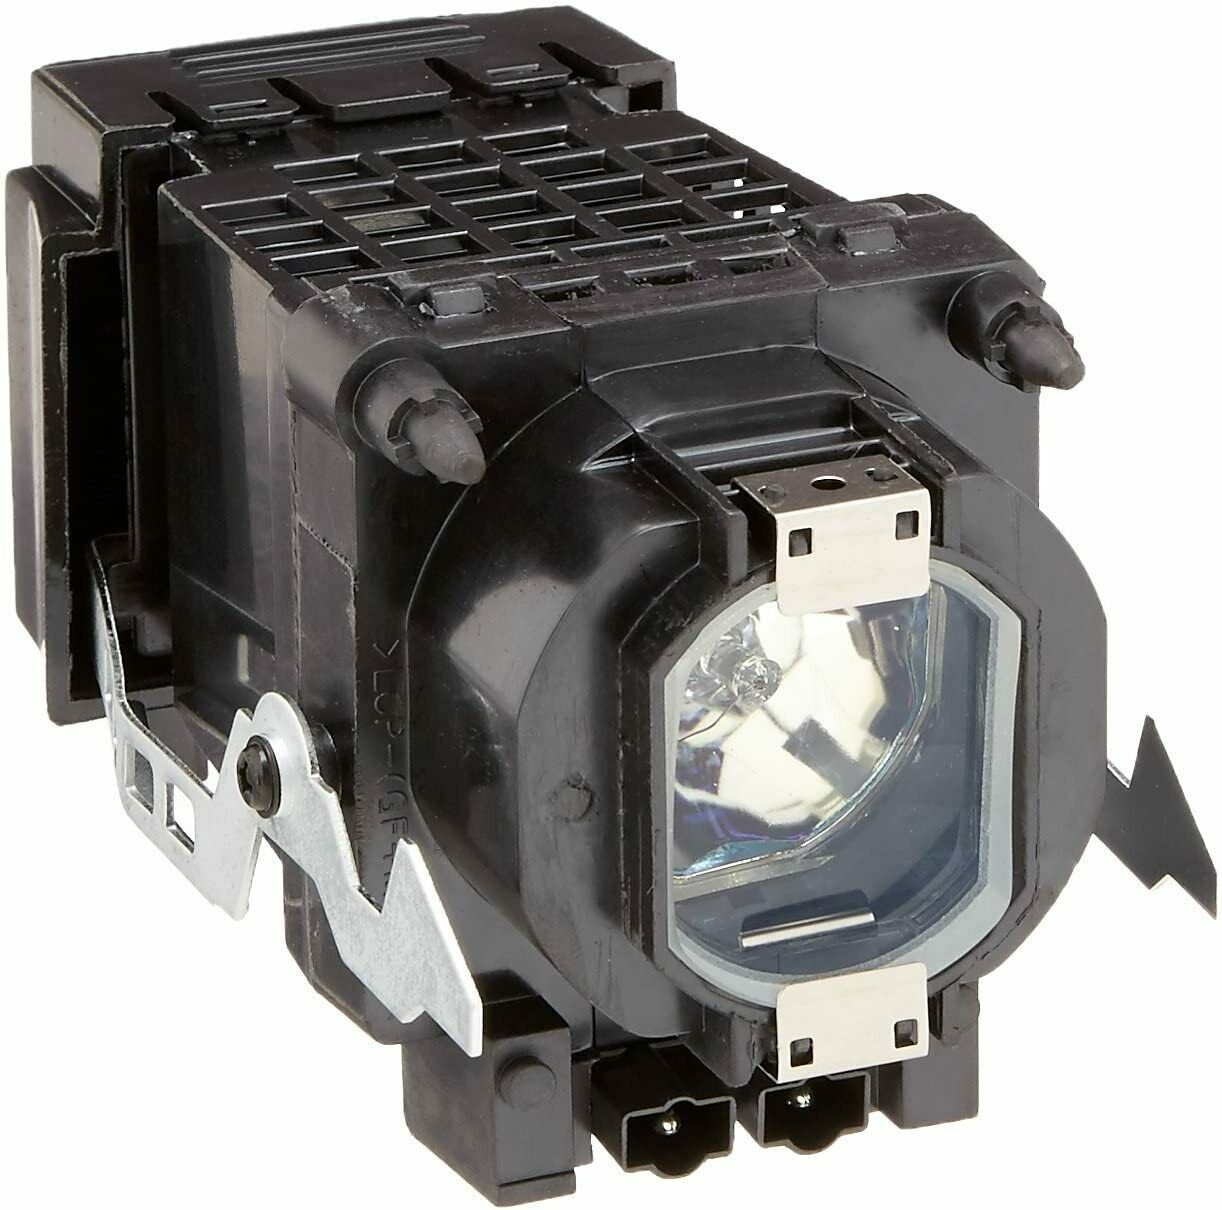 Replacement for Sony Vpl-ex222 Lamp /& Housing Projector Tv Lamp Bulb by Technical Precision